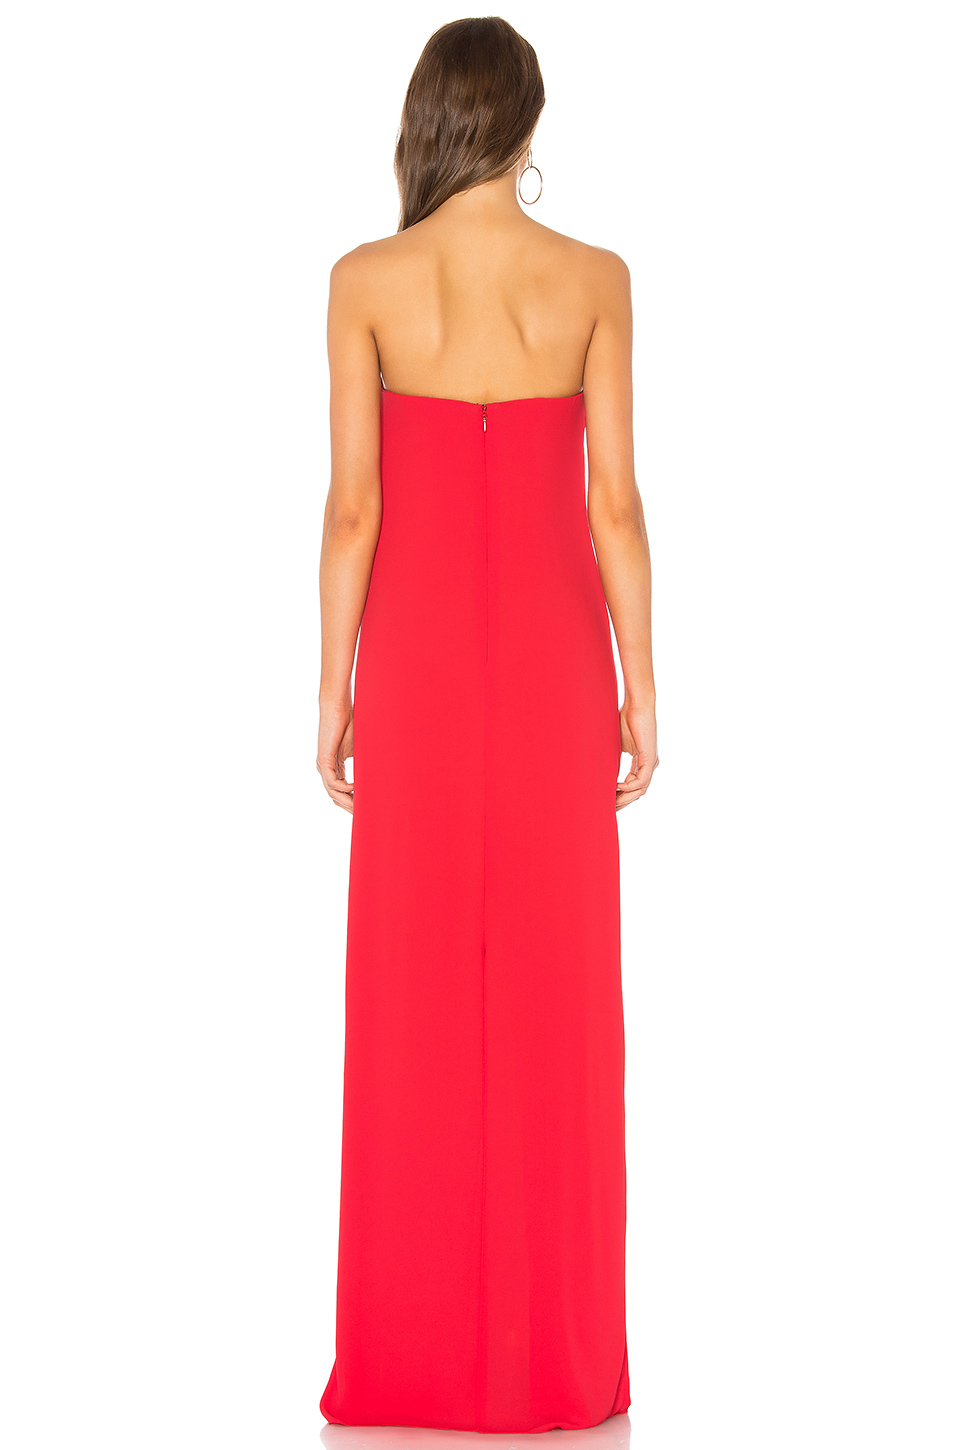 5af56a7b6700 Buy Original Halston Heritage Front Tie Detail Gown at Indonesia ...